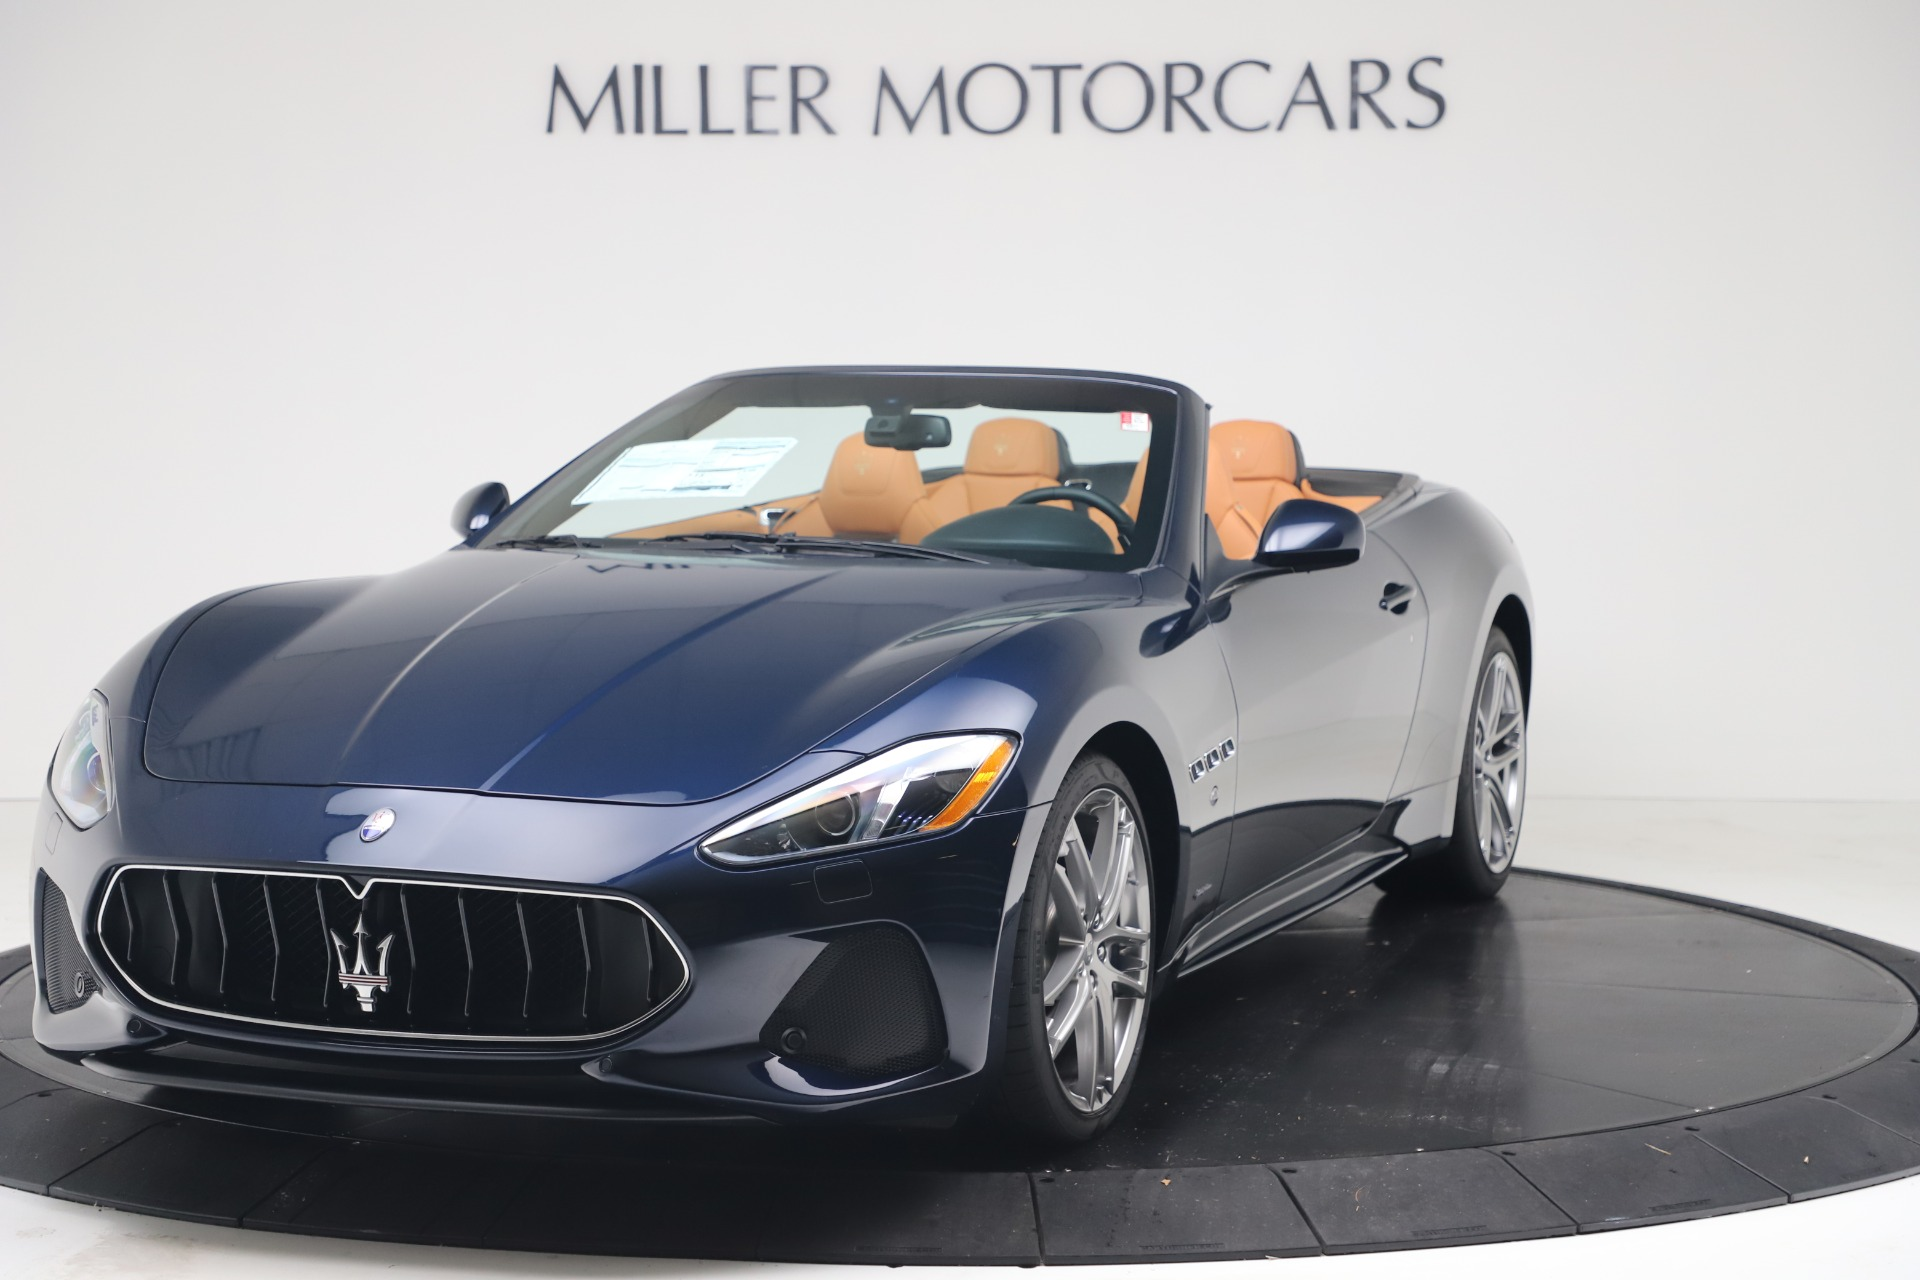 New 2019 Maserati GranTurismo Sport Convertible for sale $172,060 at Bentley Greenwich in Greenwich CT 06830 1